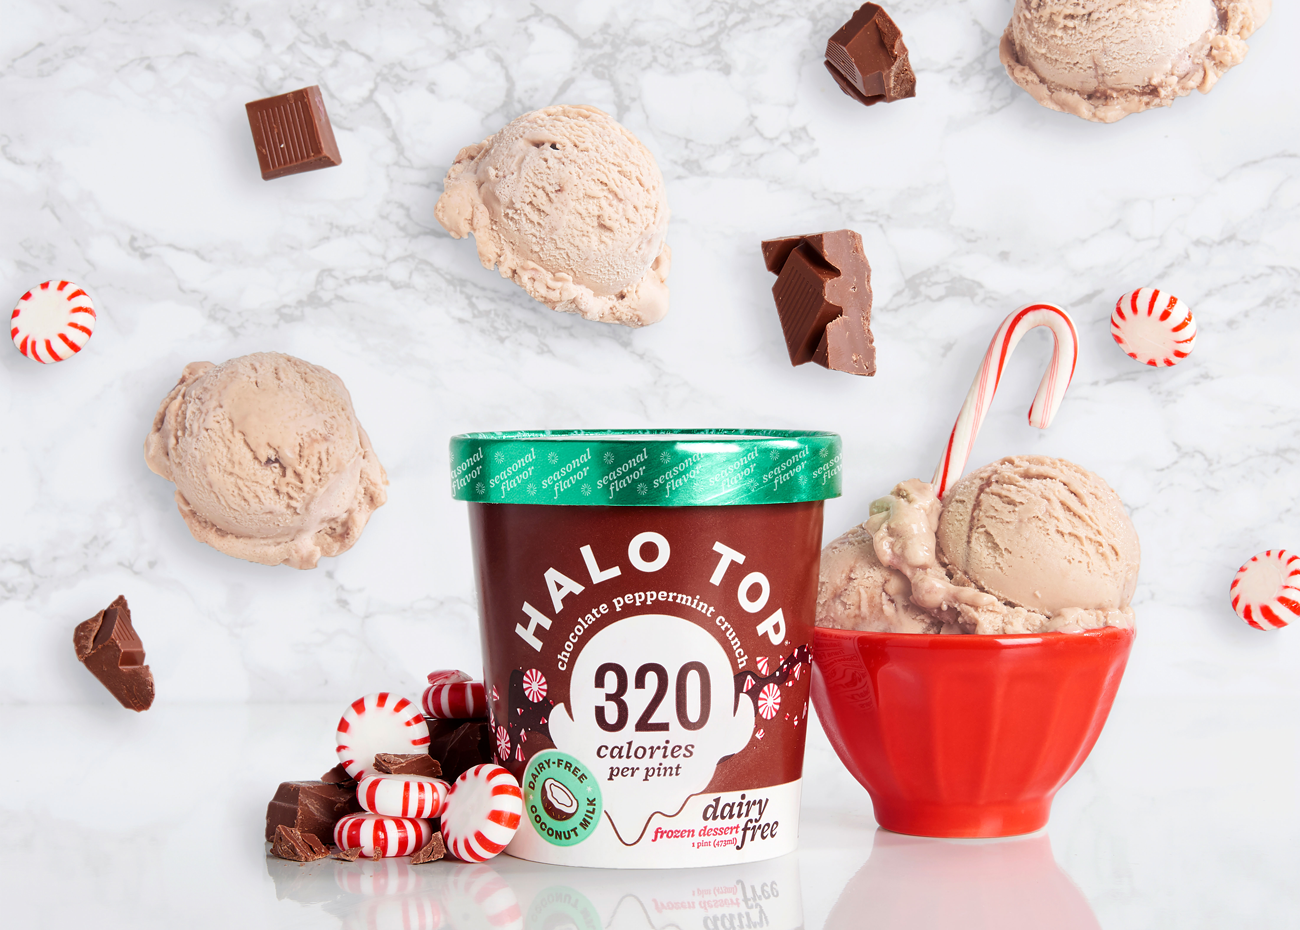 Halo Top Chocolate Peppermint Crunch